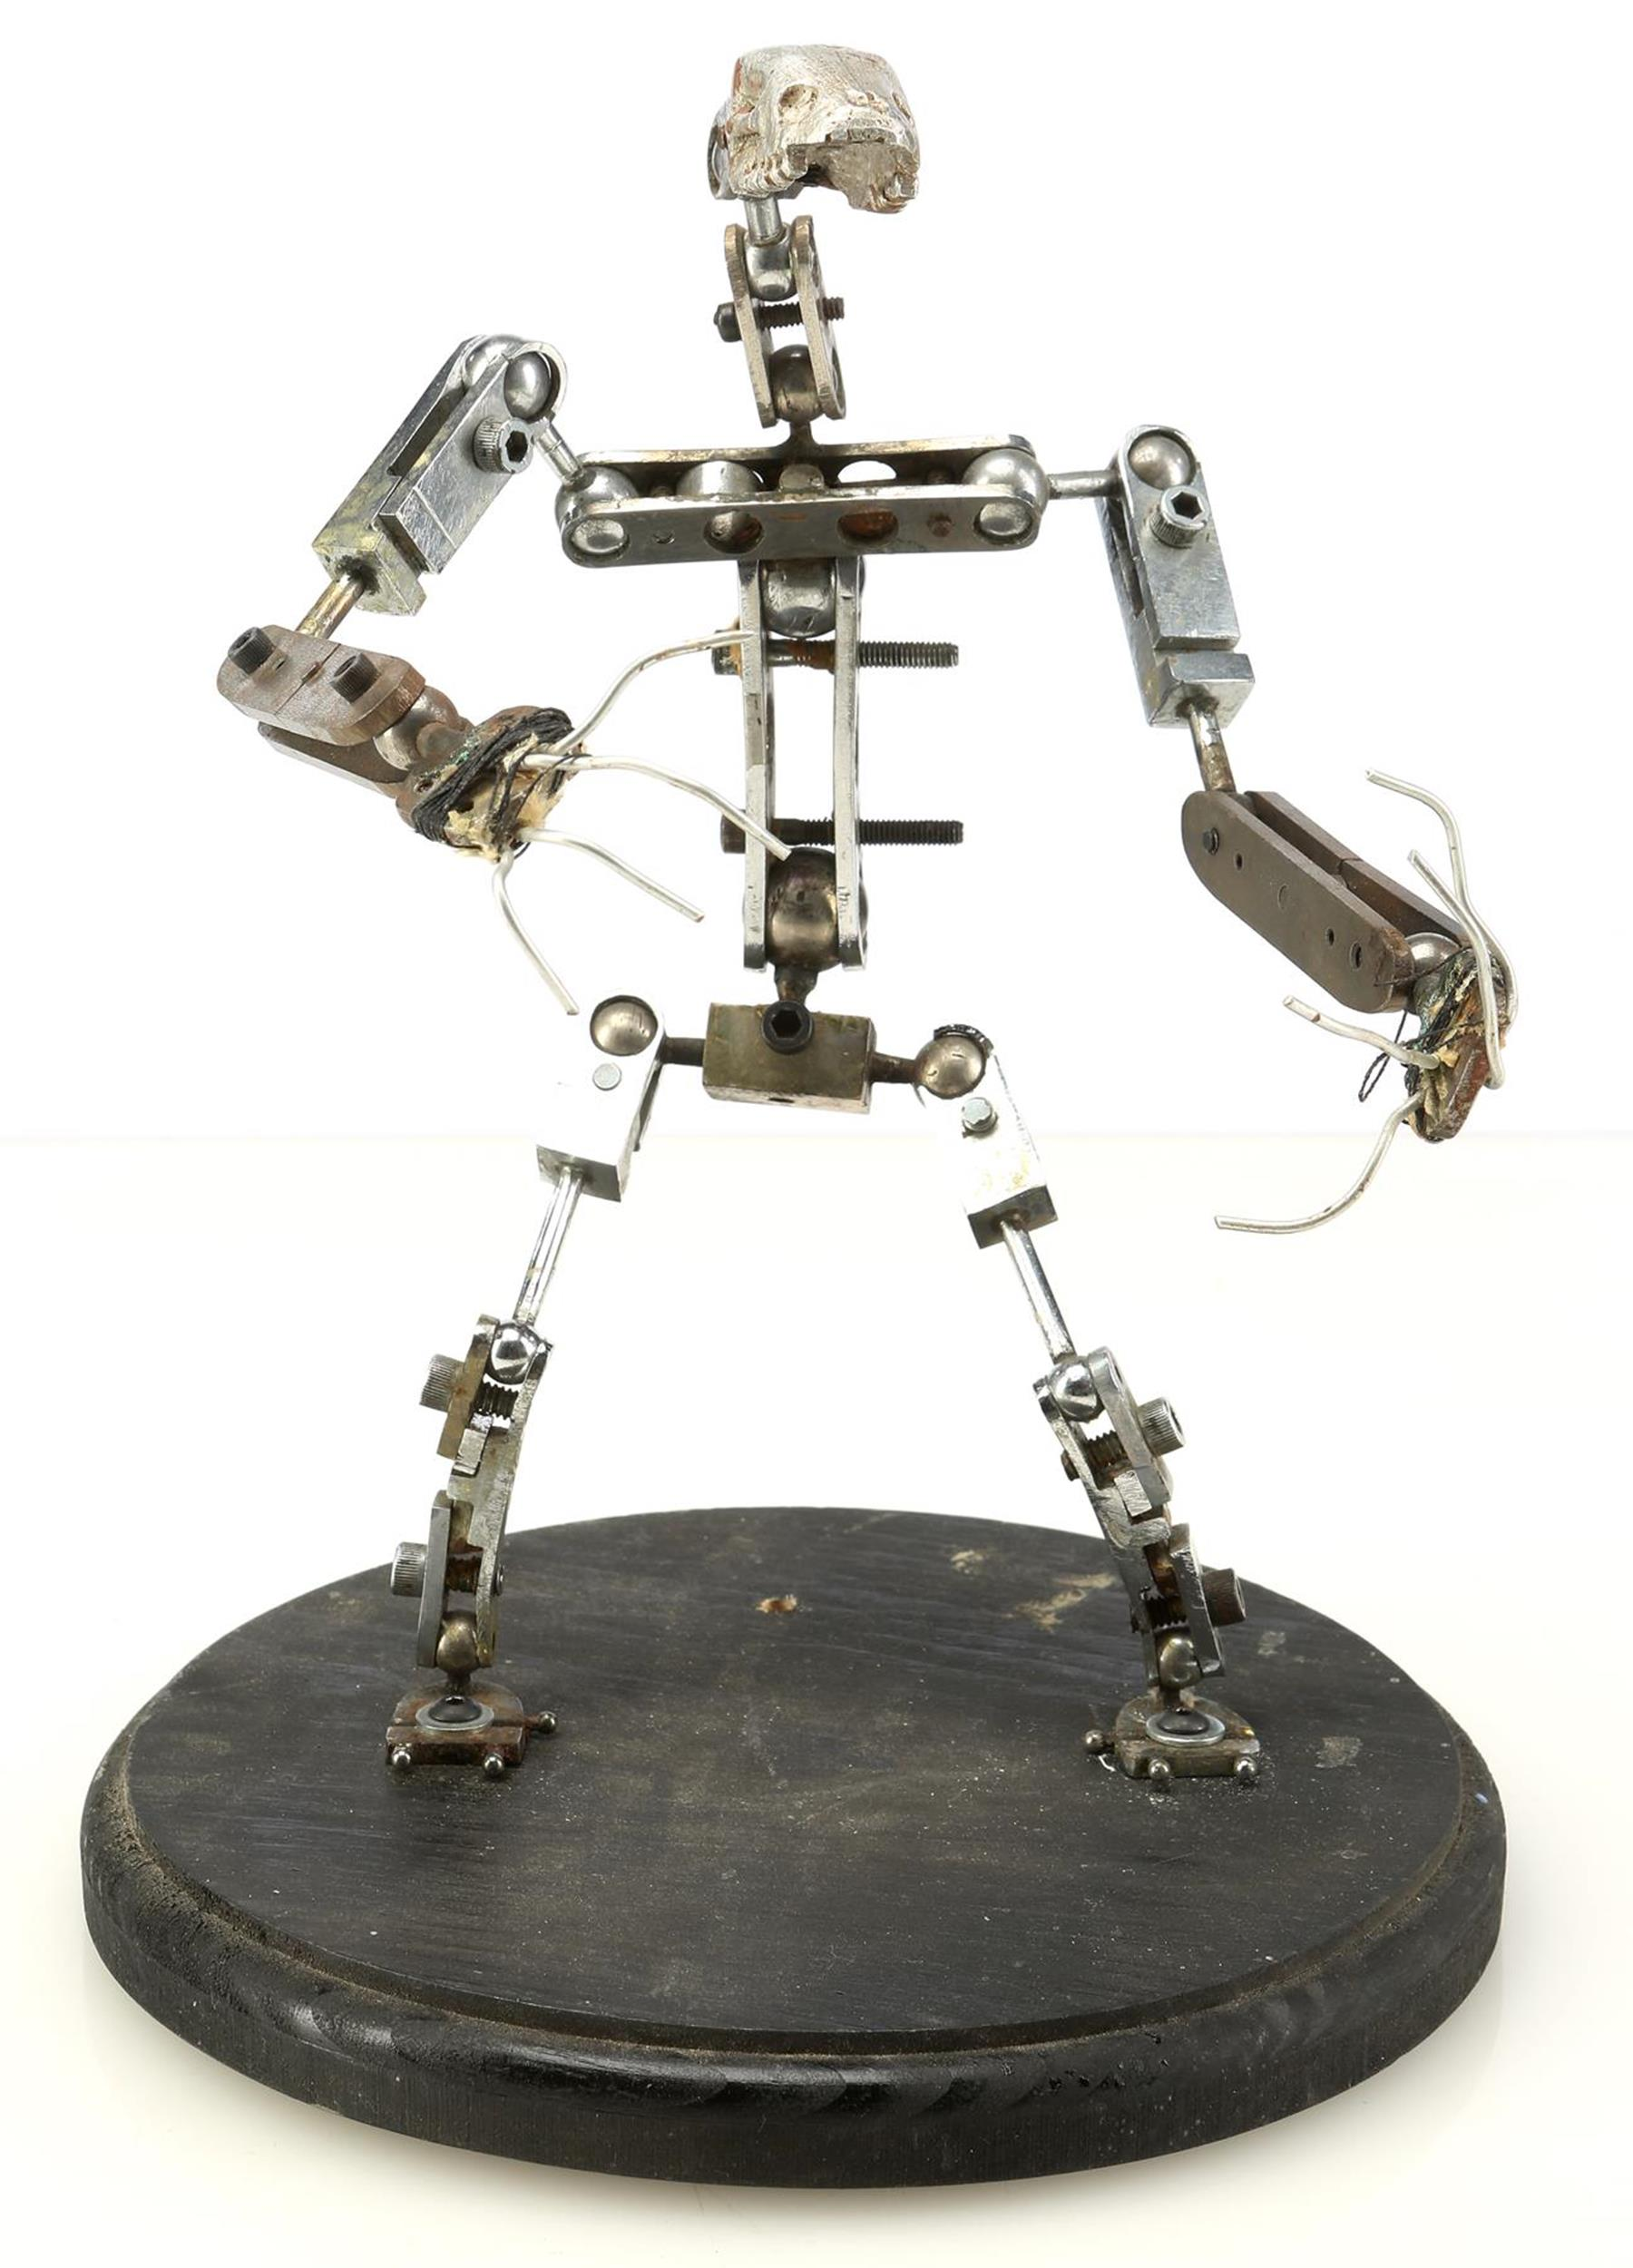 Armature for Key Chess Piece